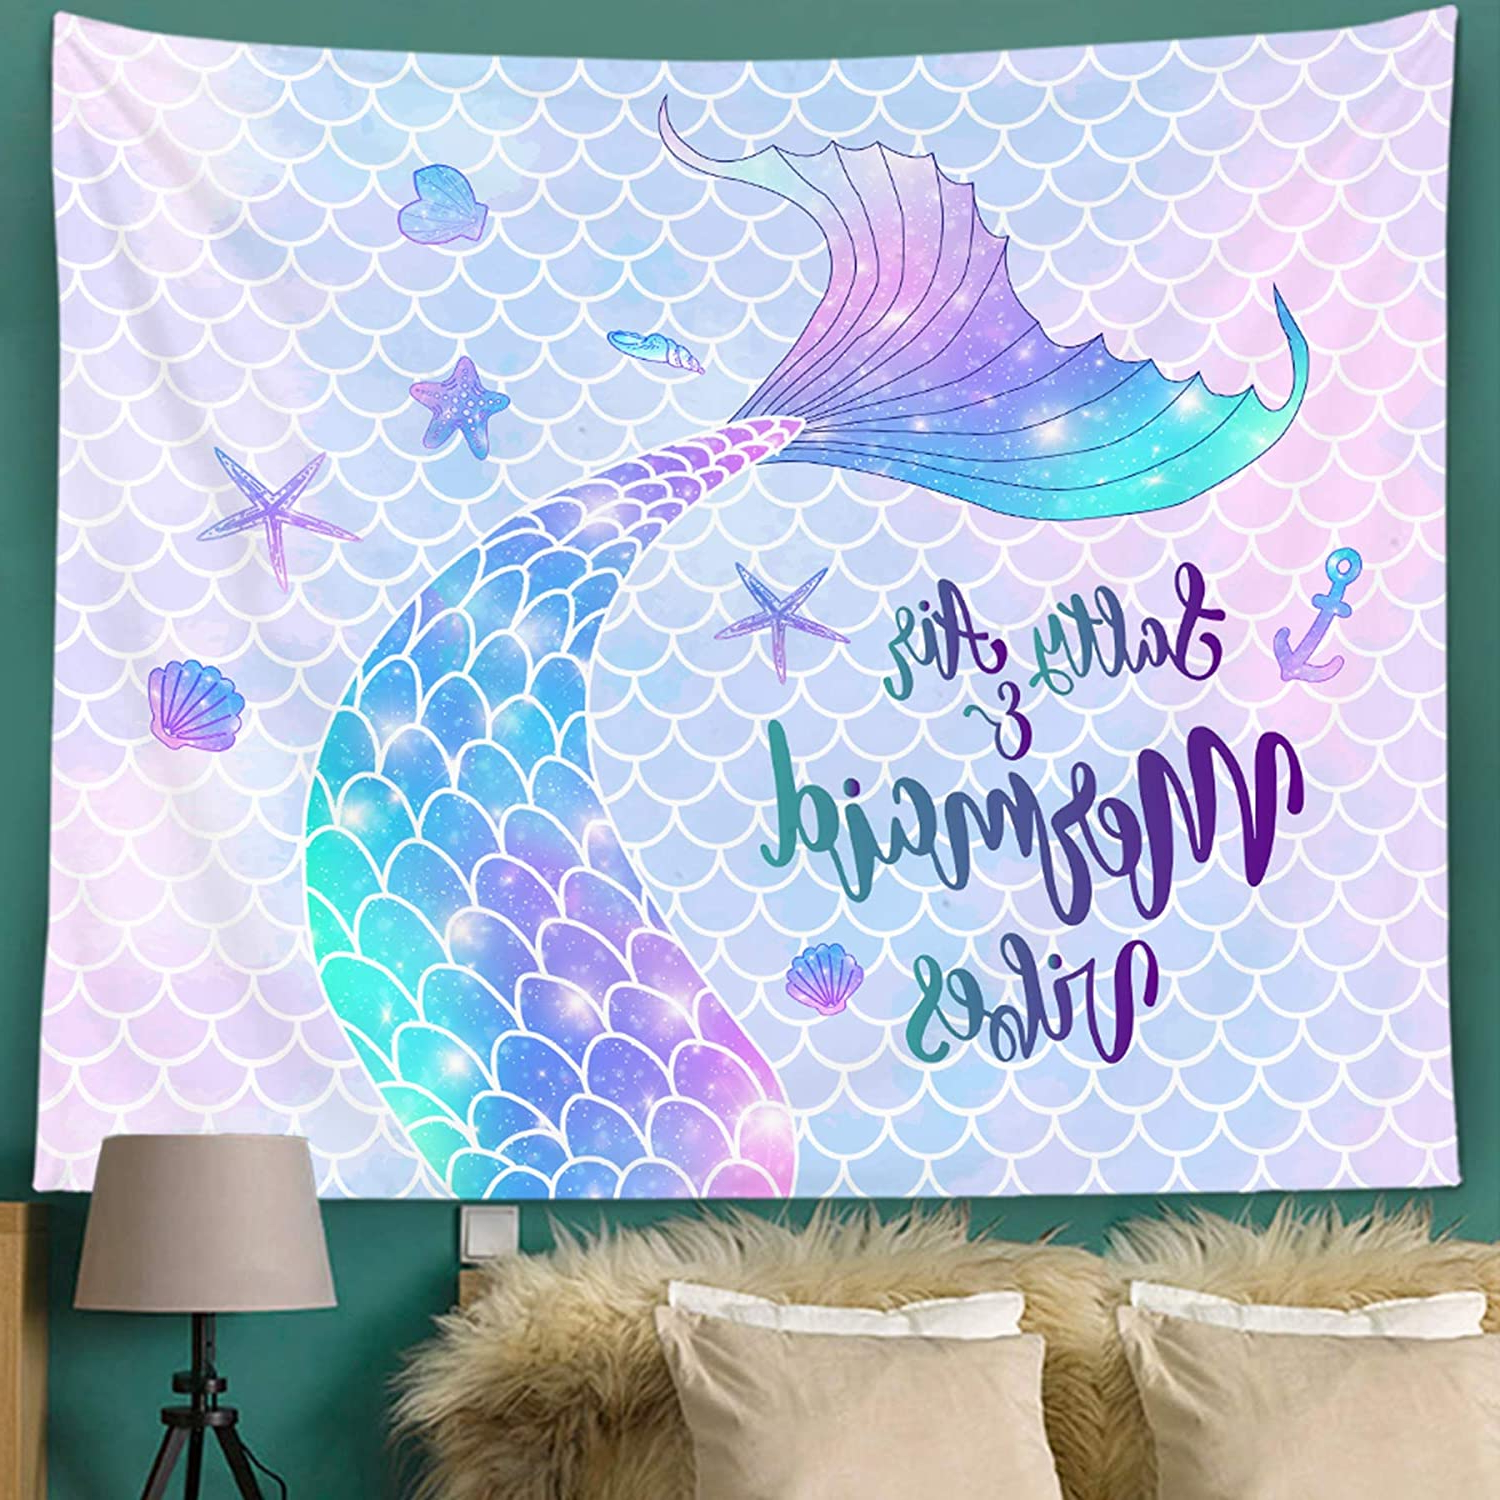 Blended Fabric Salty But Sweet Wall Hangings Within Recent Bonsai Tree Mermaid Tapestry, Mermaid Tail Scales Small Womens Tapestry Wall Hanging, Summer Beach Glitter Pink Purple Wall Tapestries For Bedroom (View 2 of 20)